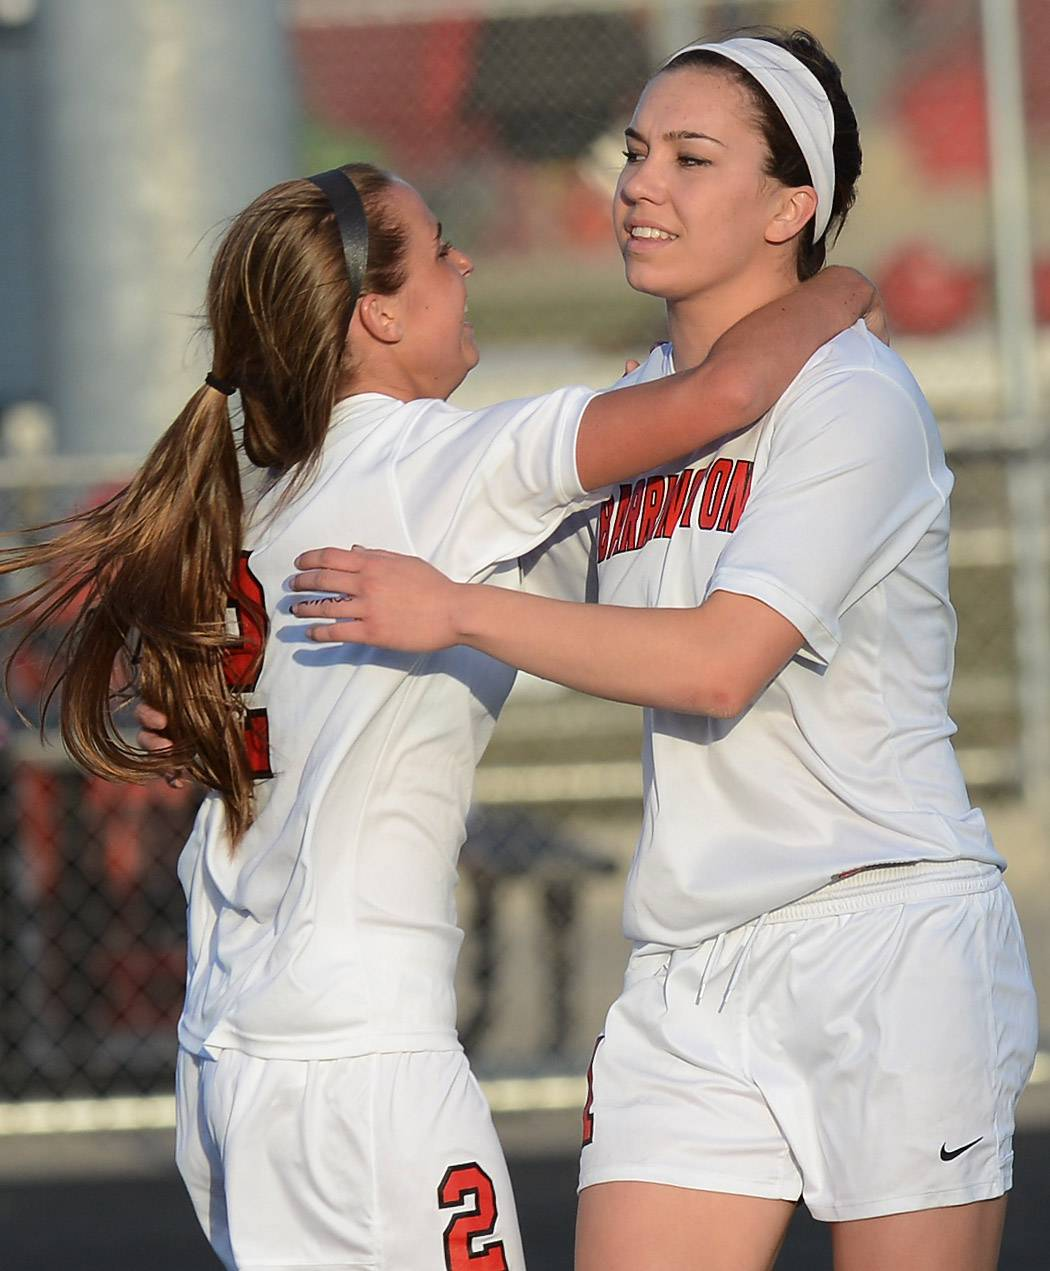 Barrington's Annalise Avers, left, congratulates teammate Jenna Szczesny after her first-half goal during Wednesday's game against Fremd.